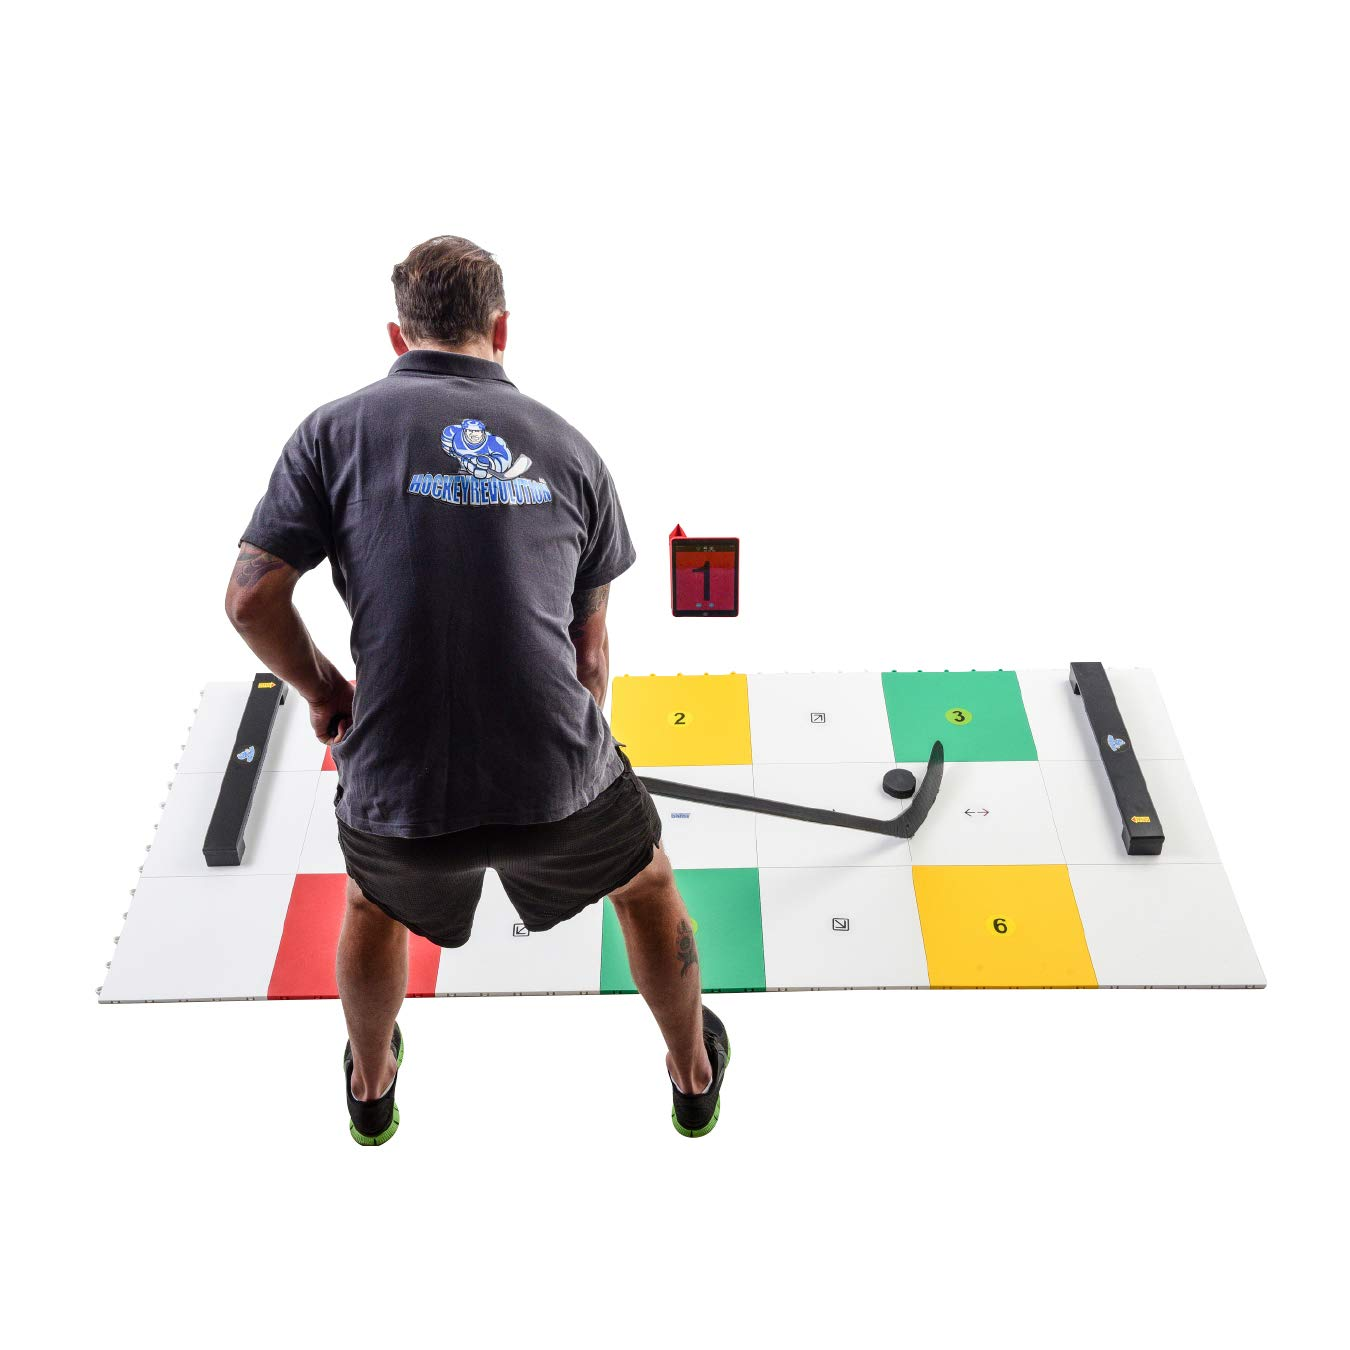 Hockey Revolution Professional Training Flooring Tile - MY PUZZLE SYSTEMS by Hockey Revolution (Image #1)